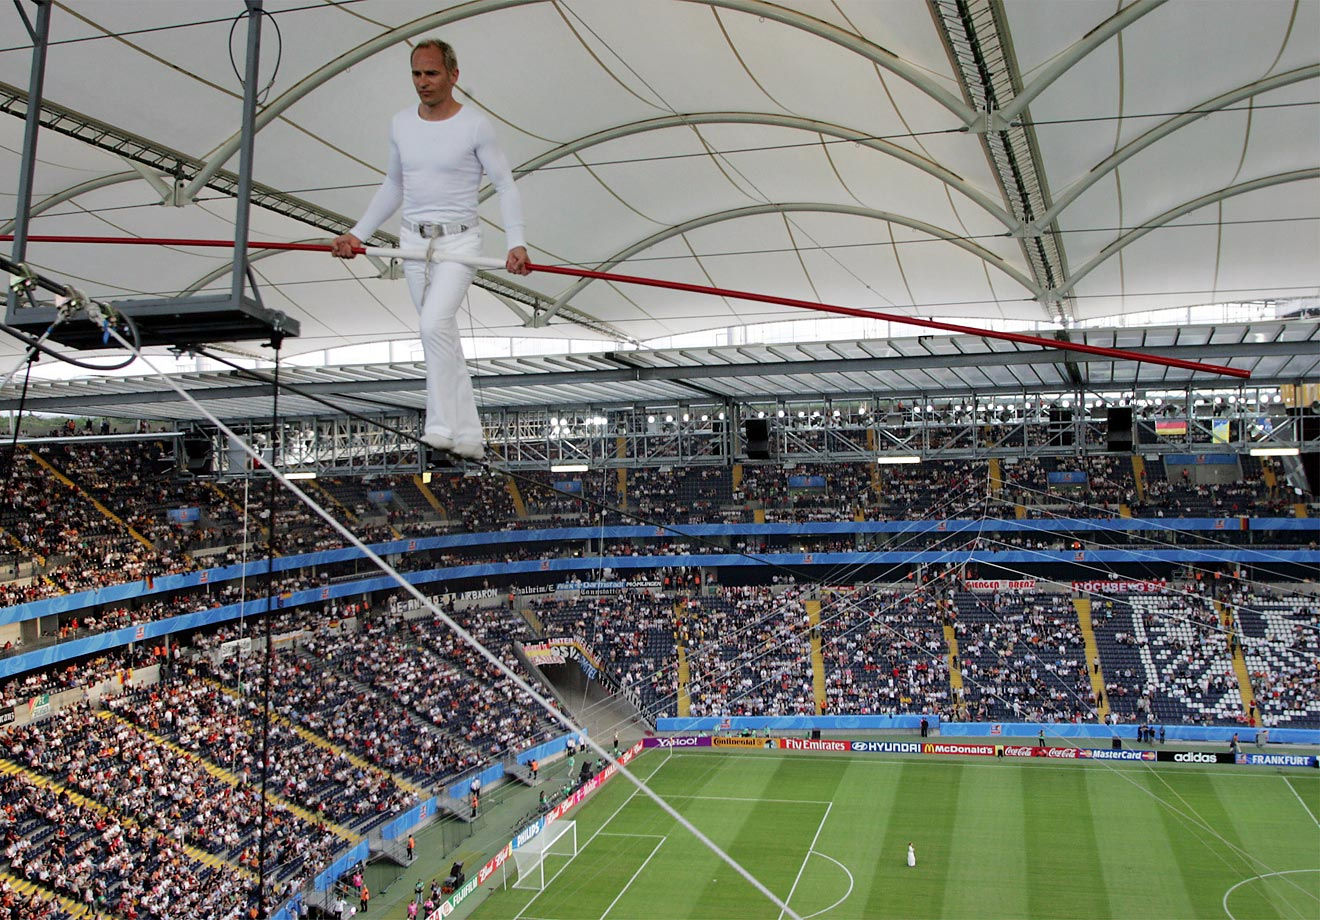 Artist David Dimitri from Switzerland performs on the high wire during the opening ceremony prior to the Confederations Cup match between Germany and Australia at the FIFA World Cup stadium in Frankfurt, Germany.